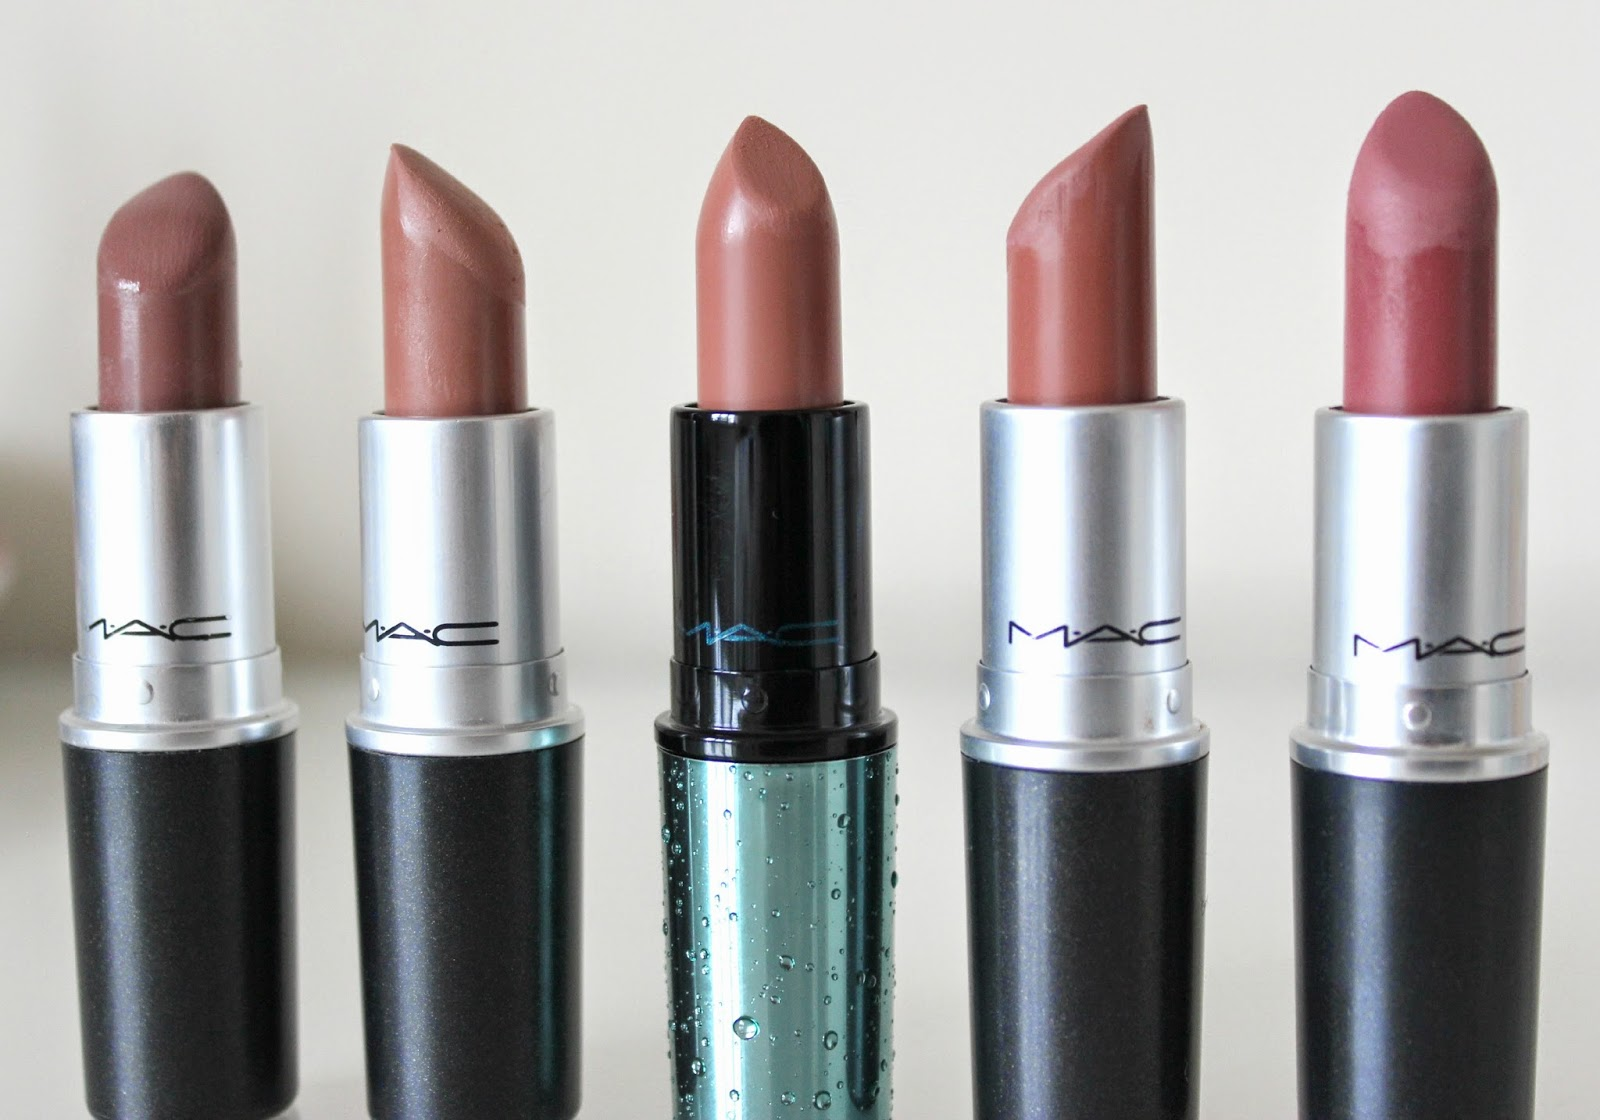 Geliefde MAC: The Nudes - Tattooed Tealady #FV11